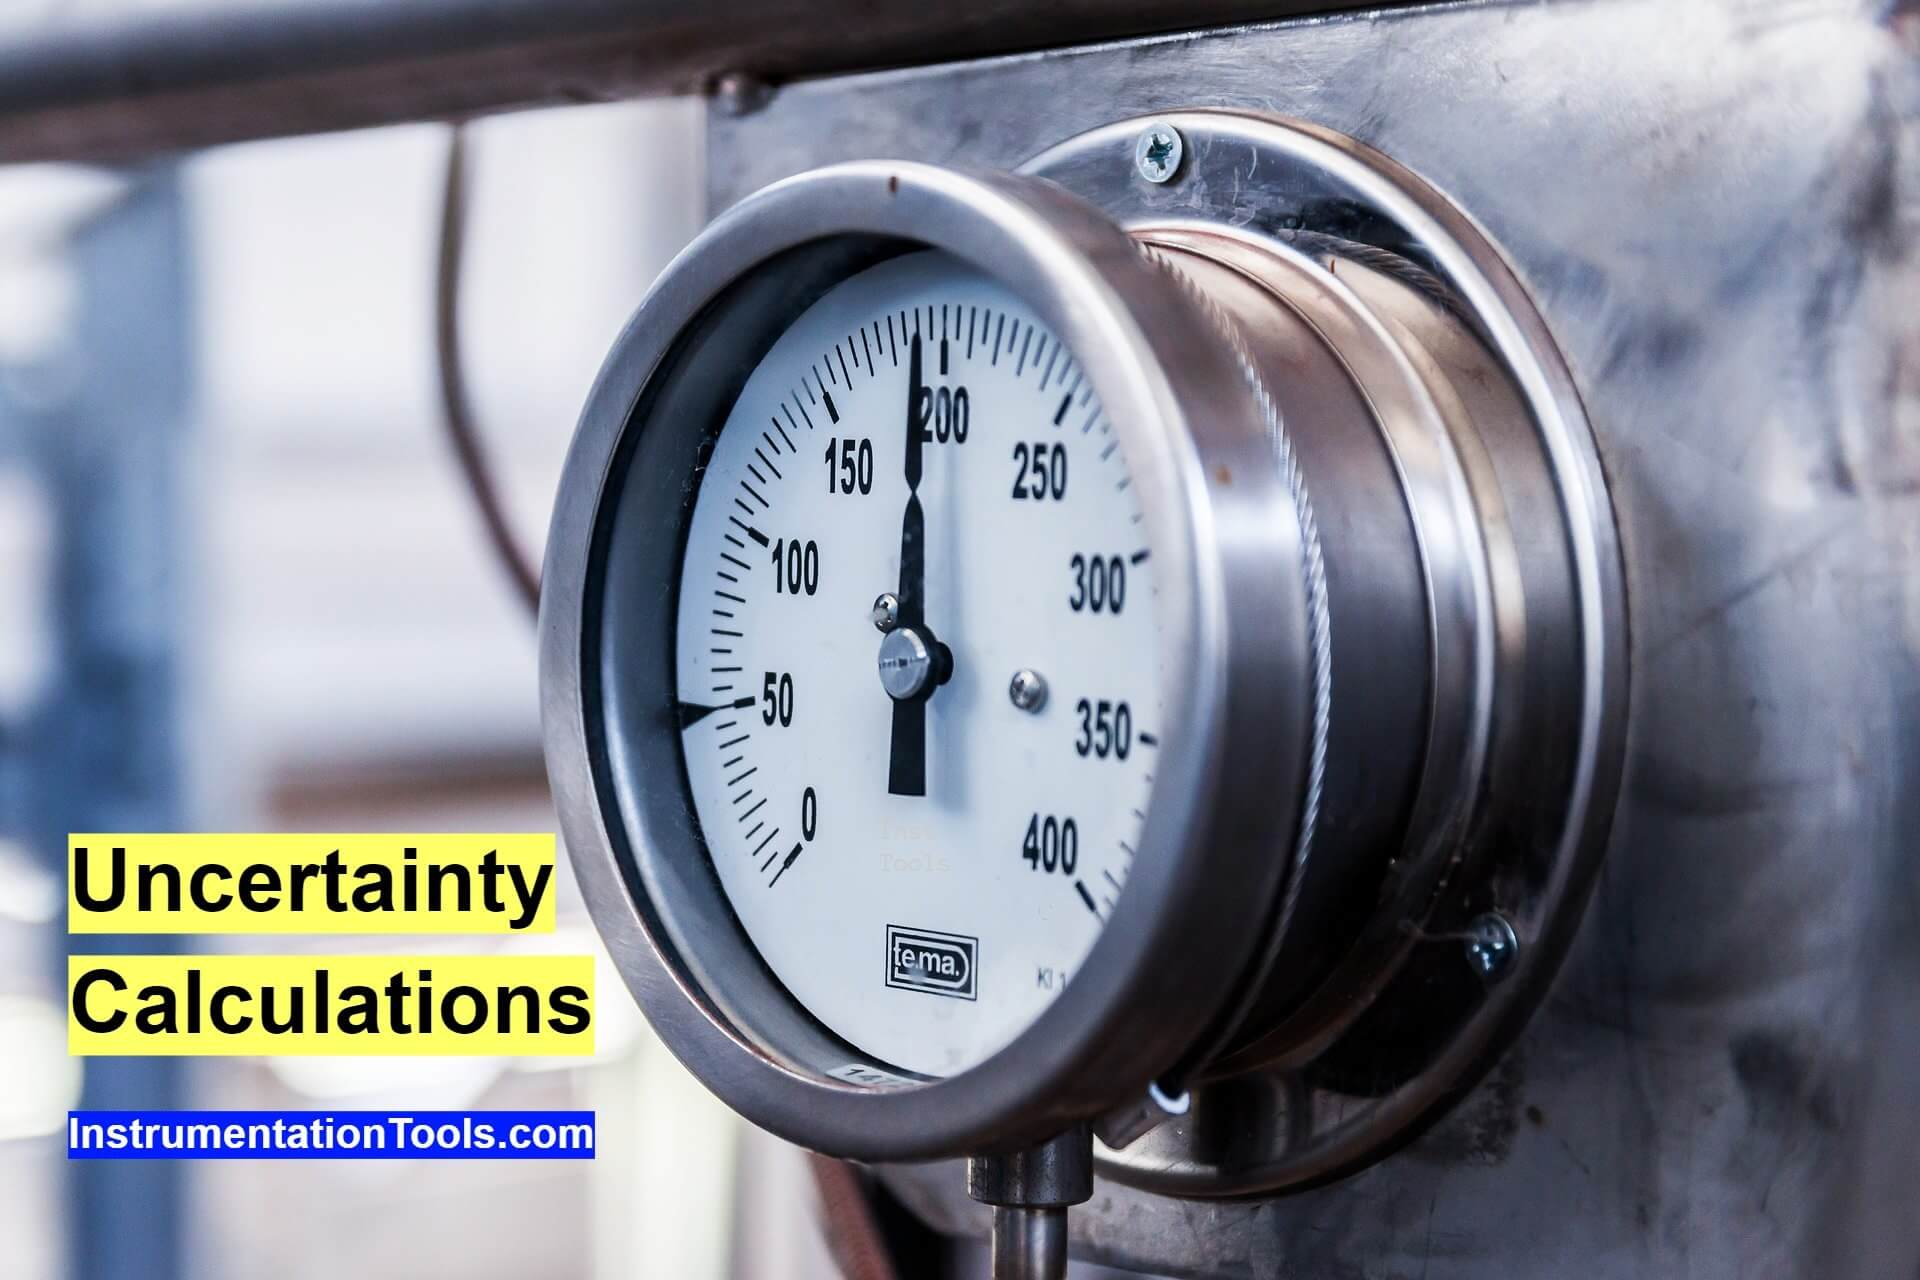 Uncertainty Calculations of Pressure Calibration